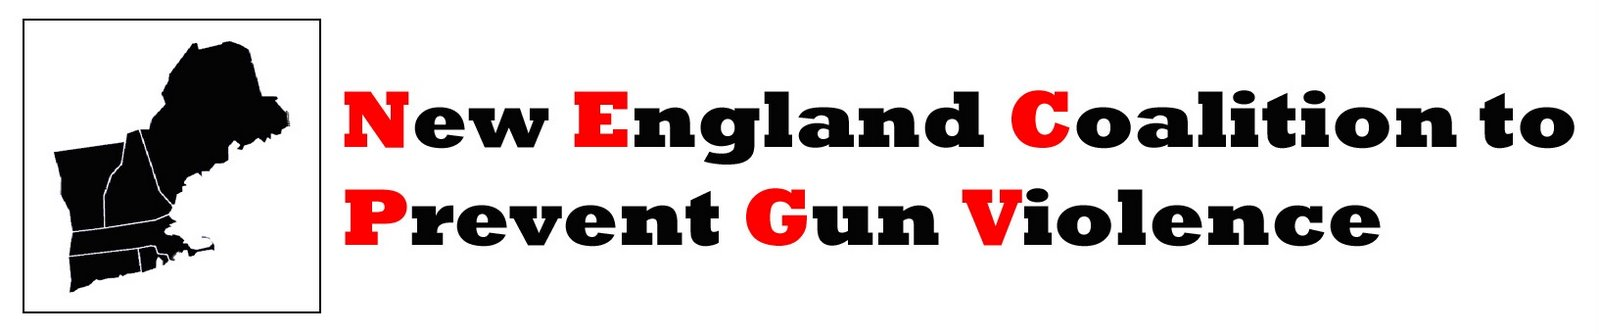 New England Coalition to Prevent Gun Violence